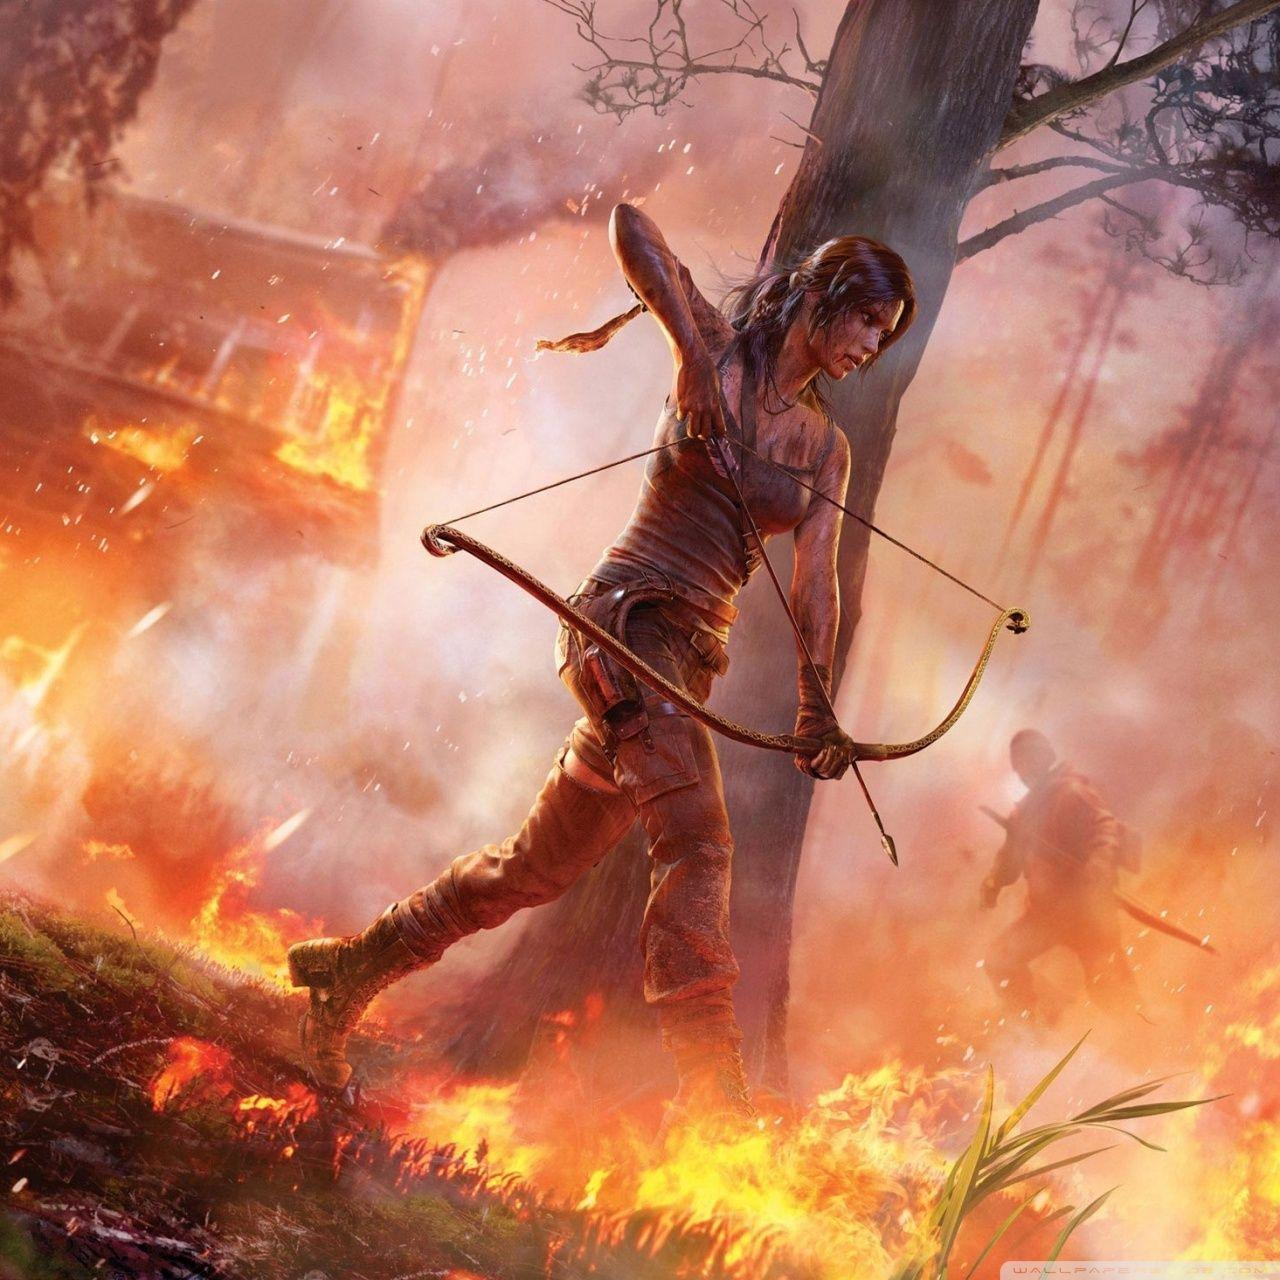 Tomb Rider Wallpaper: Tomb Raider 2016 Android Wallpapers